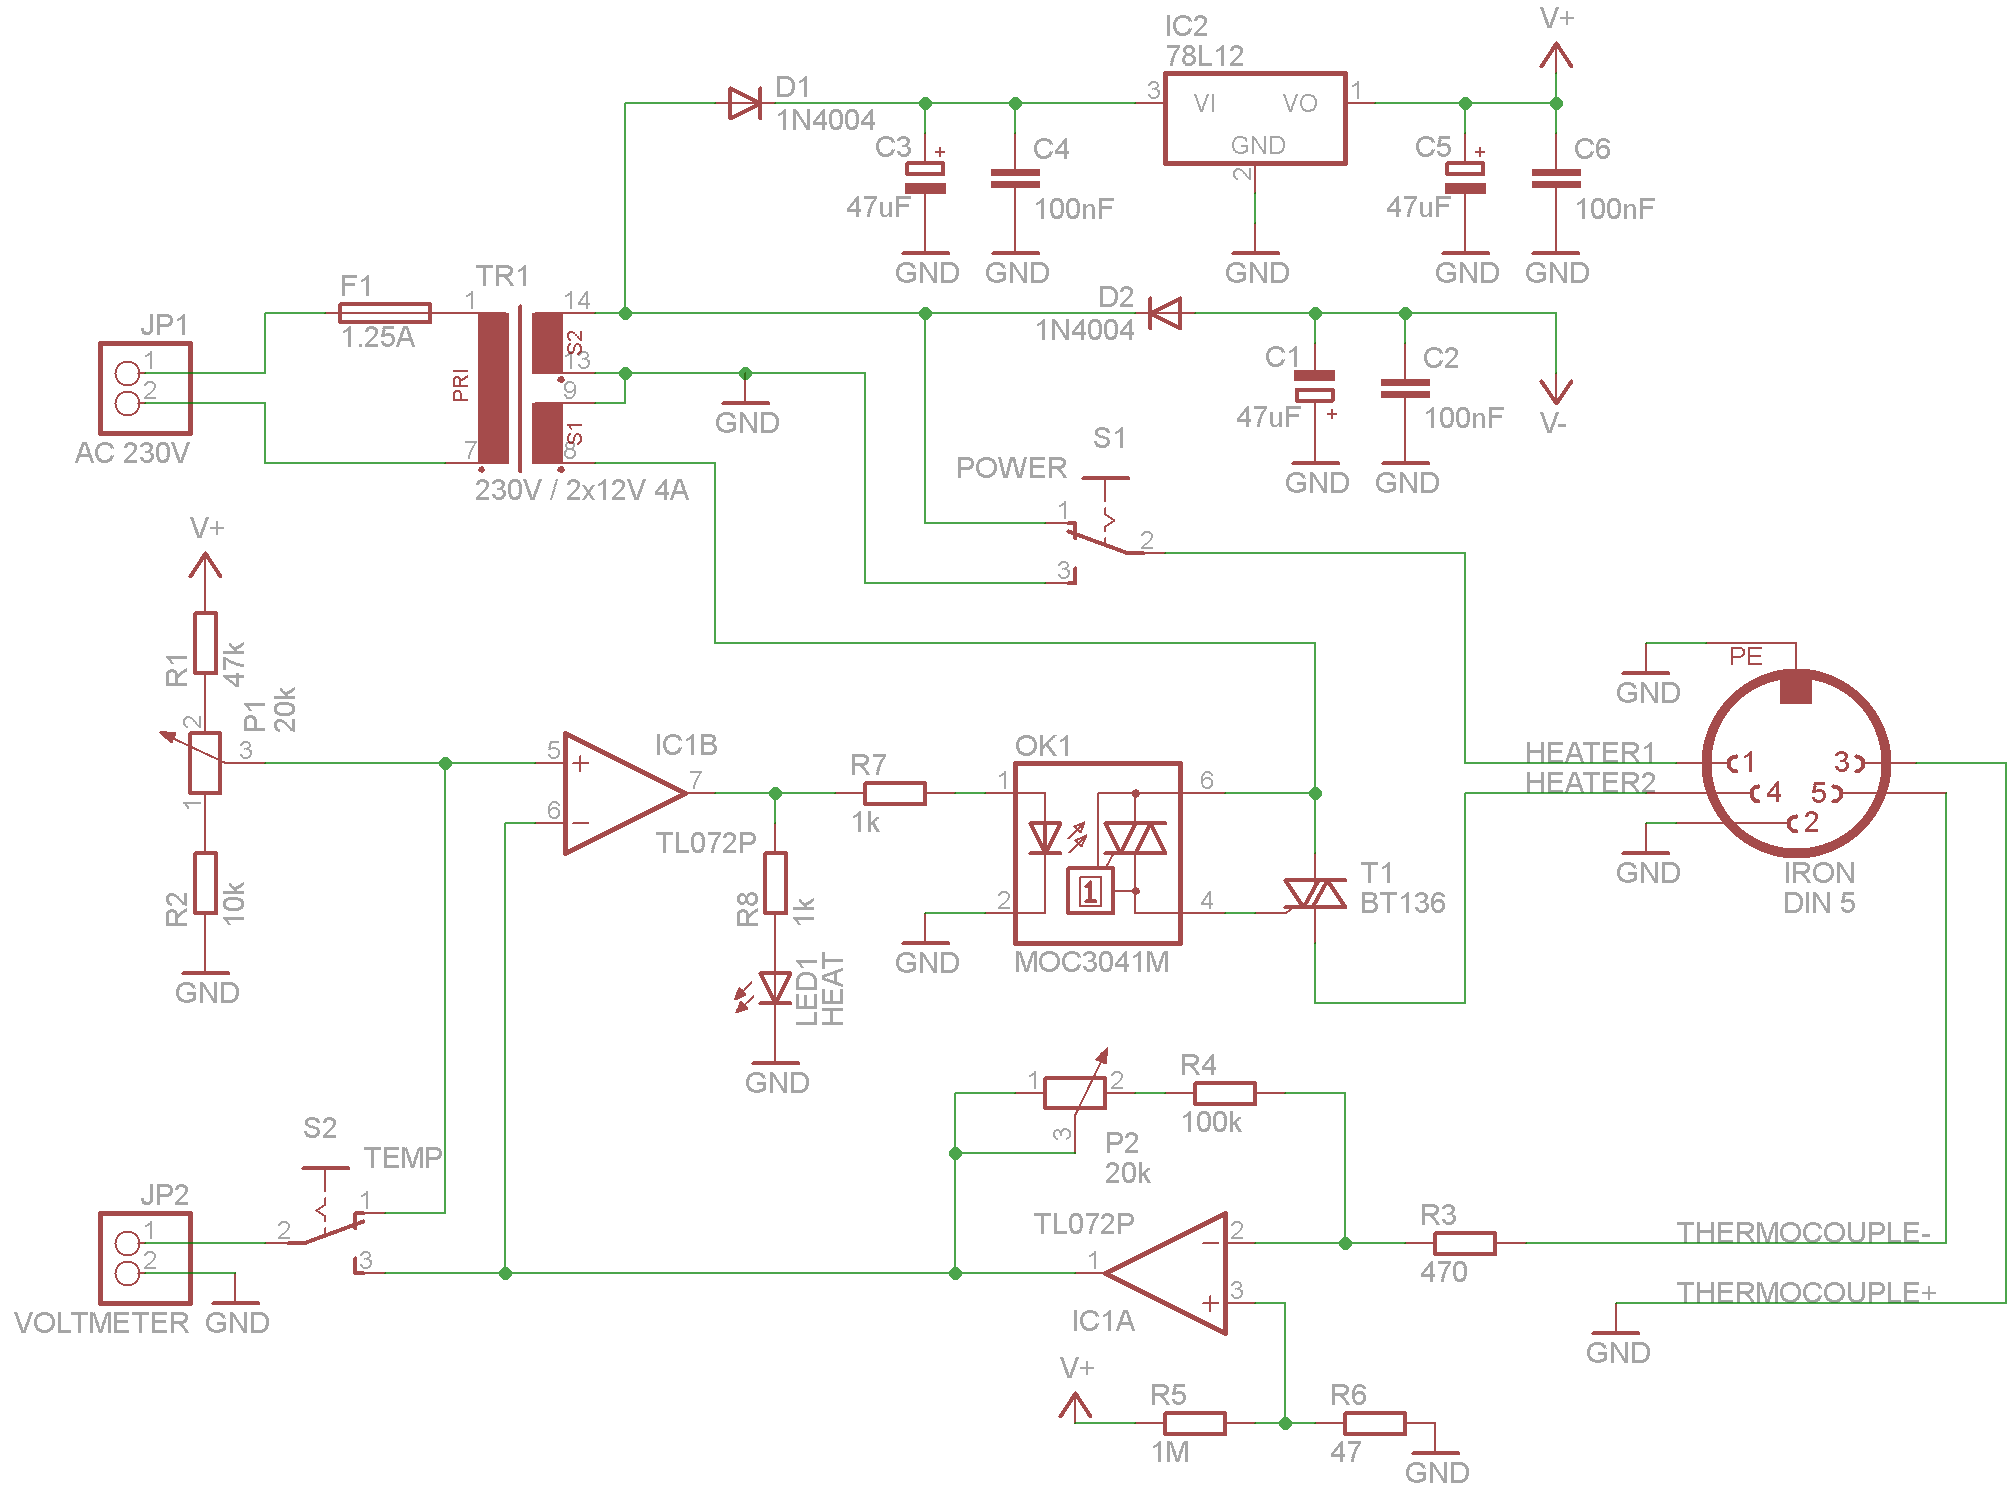 soldering iron wiring diagram er for employee database diy station schematic get free image about